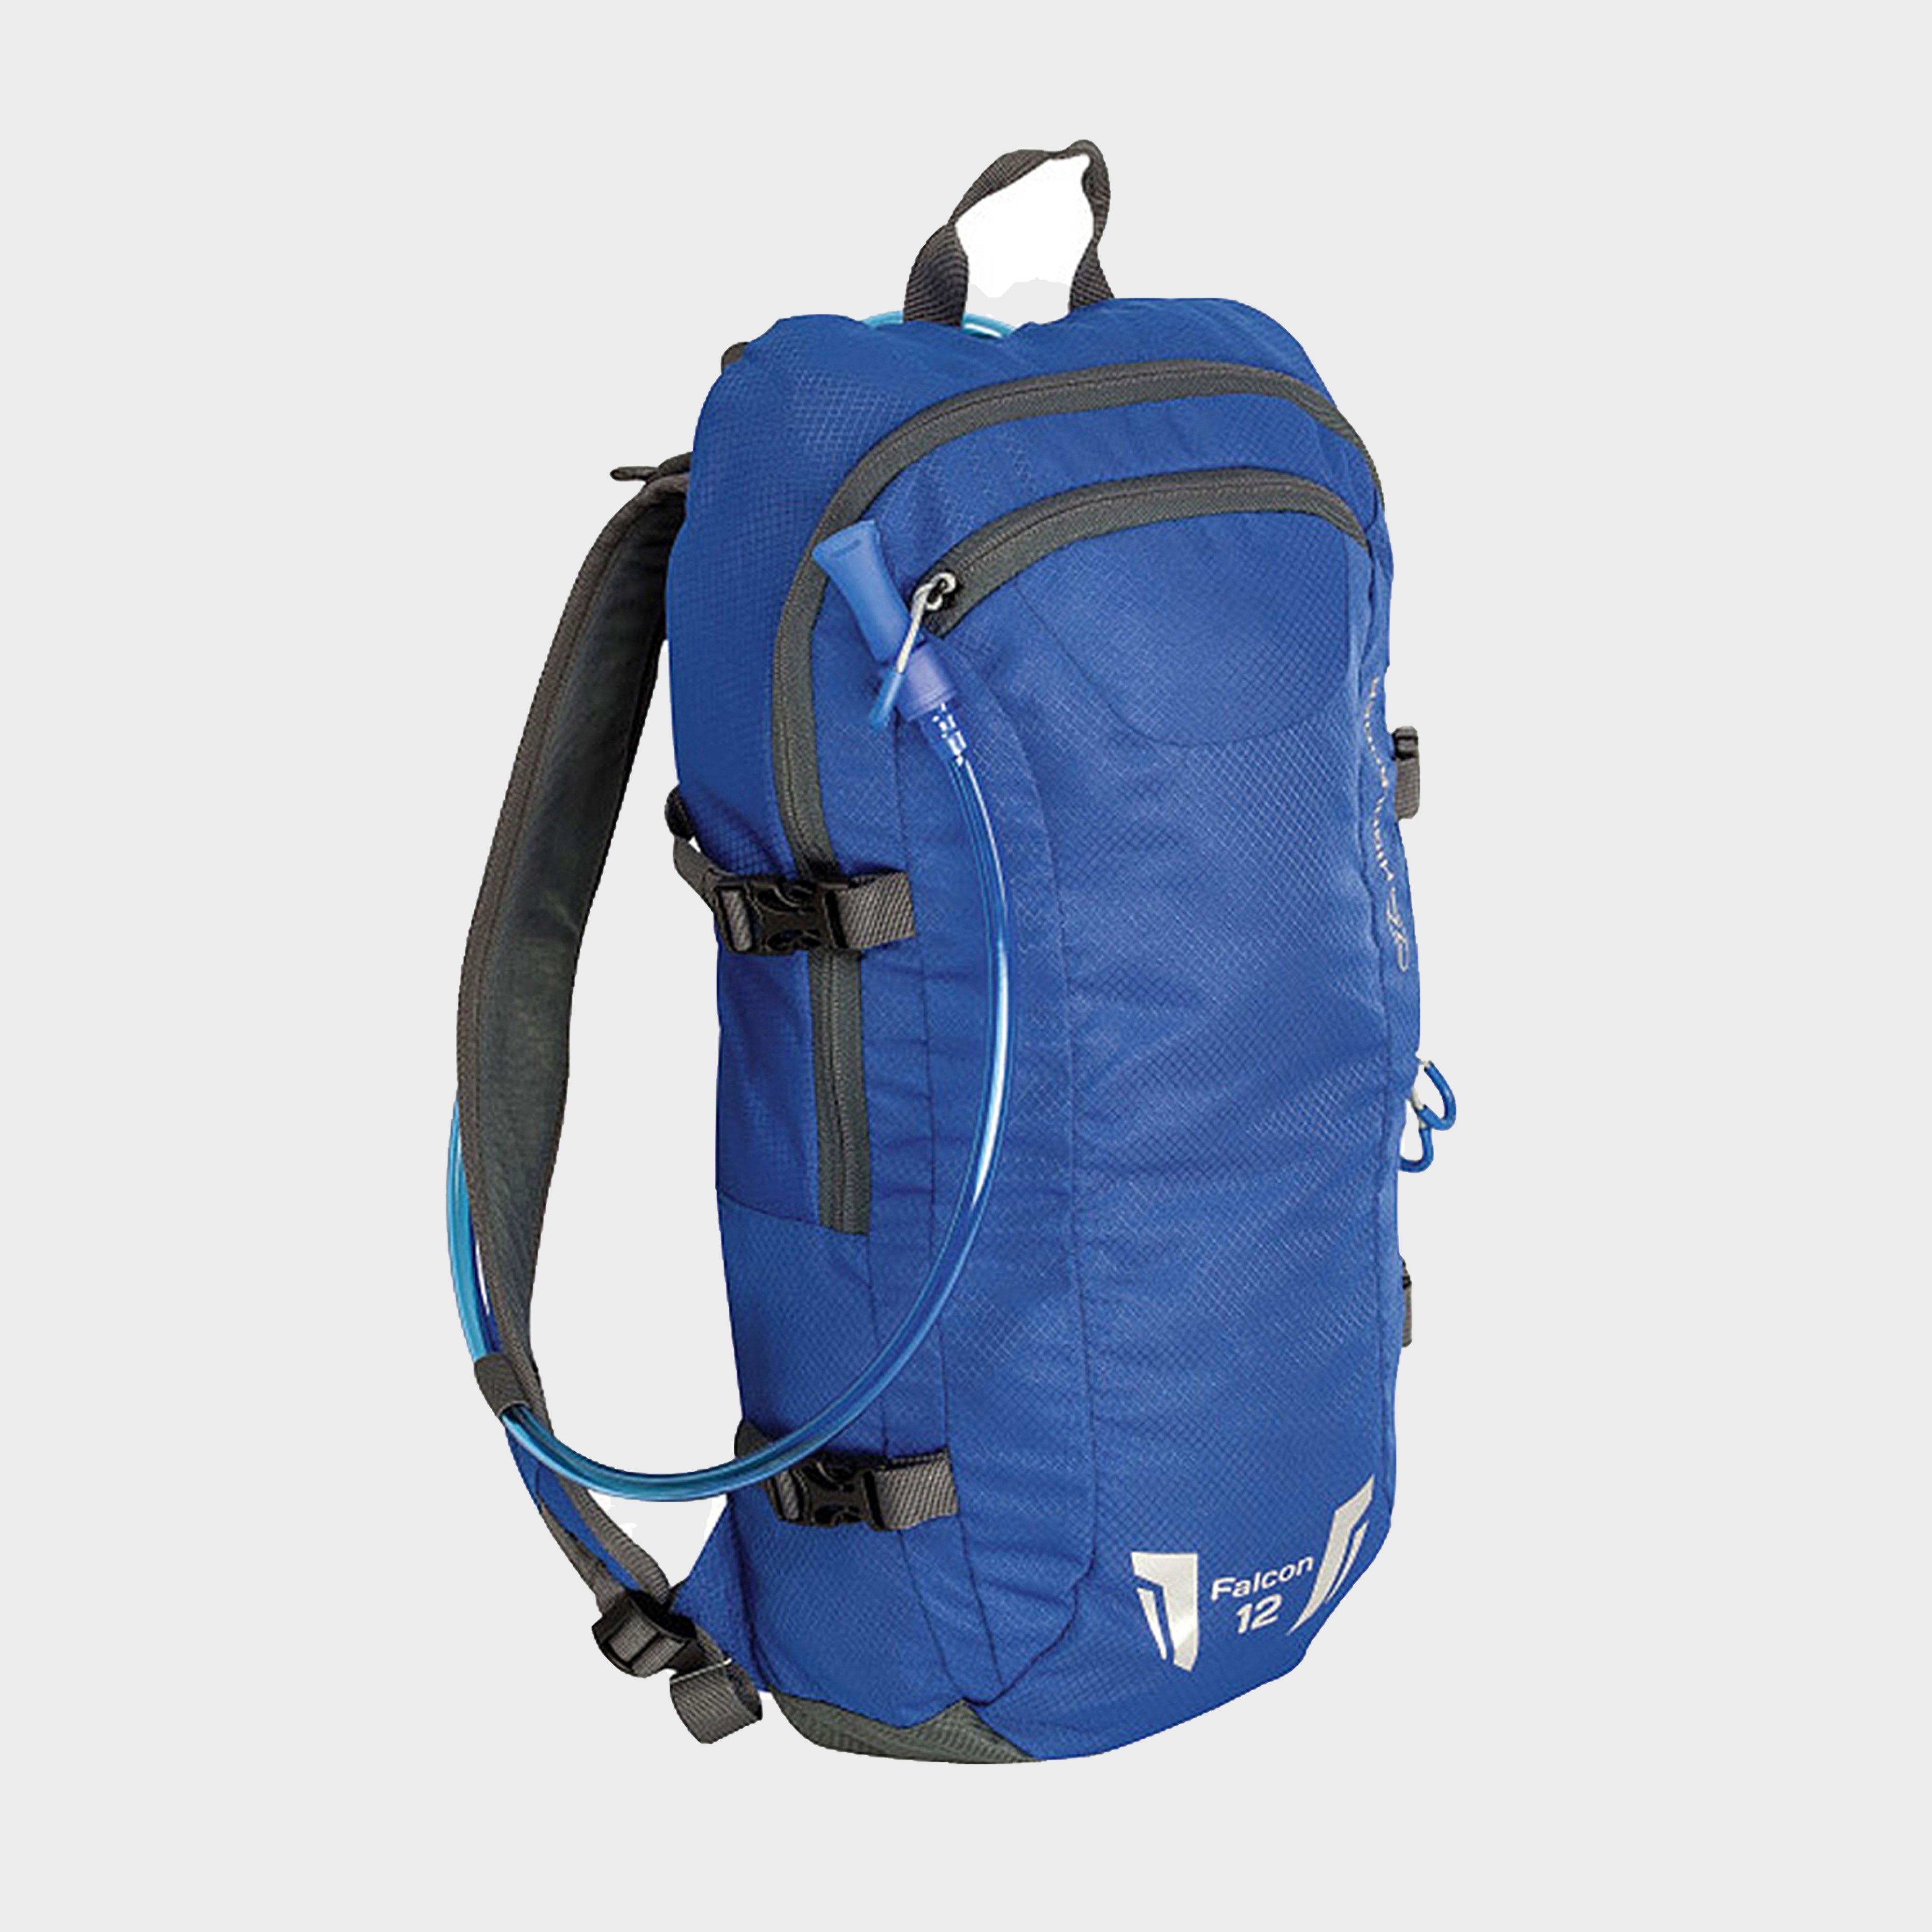 Highlander Highlander Falcon 12 Hydration Backpack